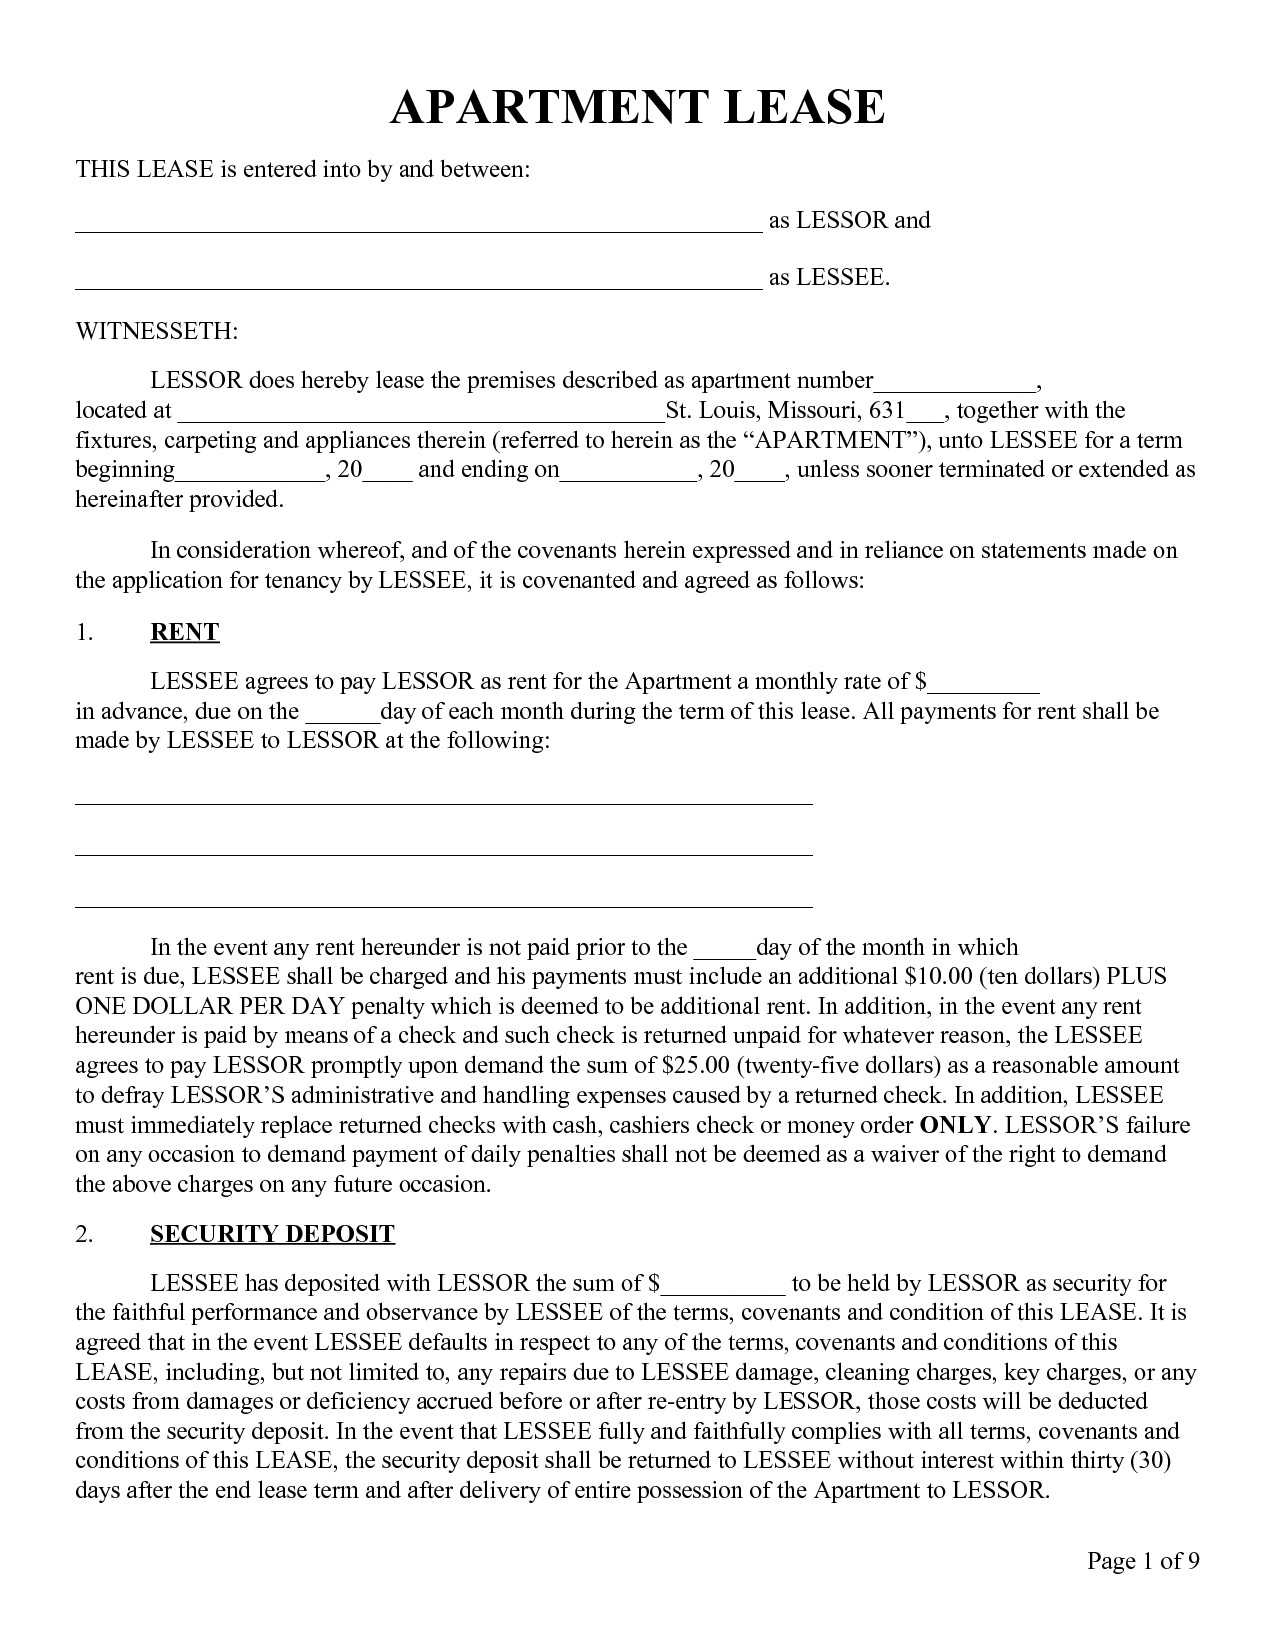 End Of Lease Letter Template - What Happens at the End A Car Lease Agreement Lovely E Page